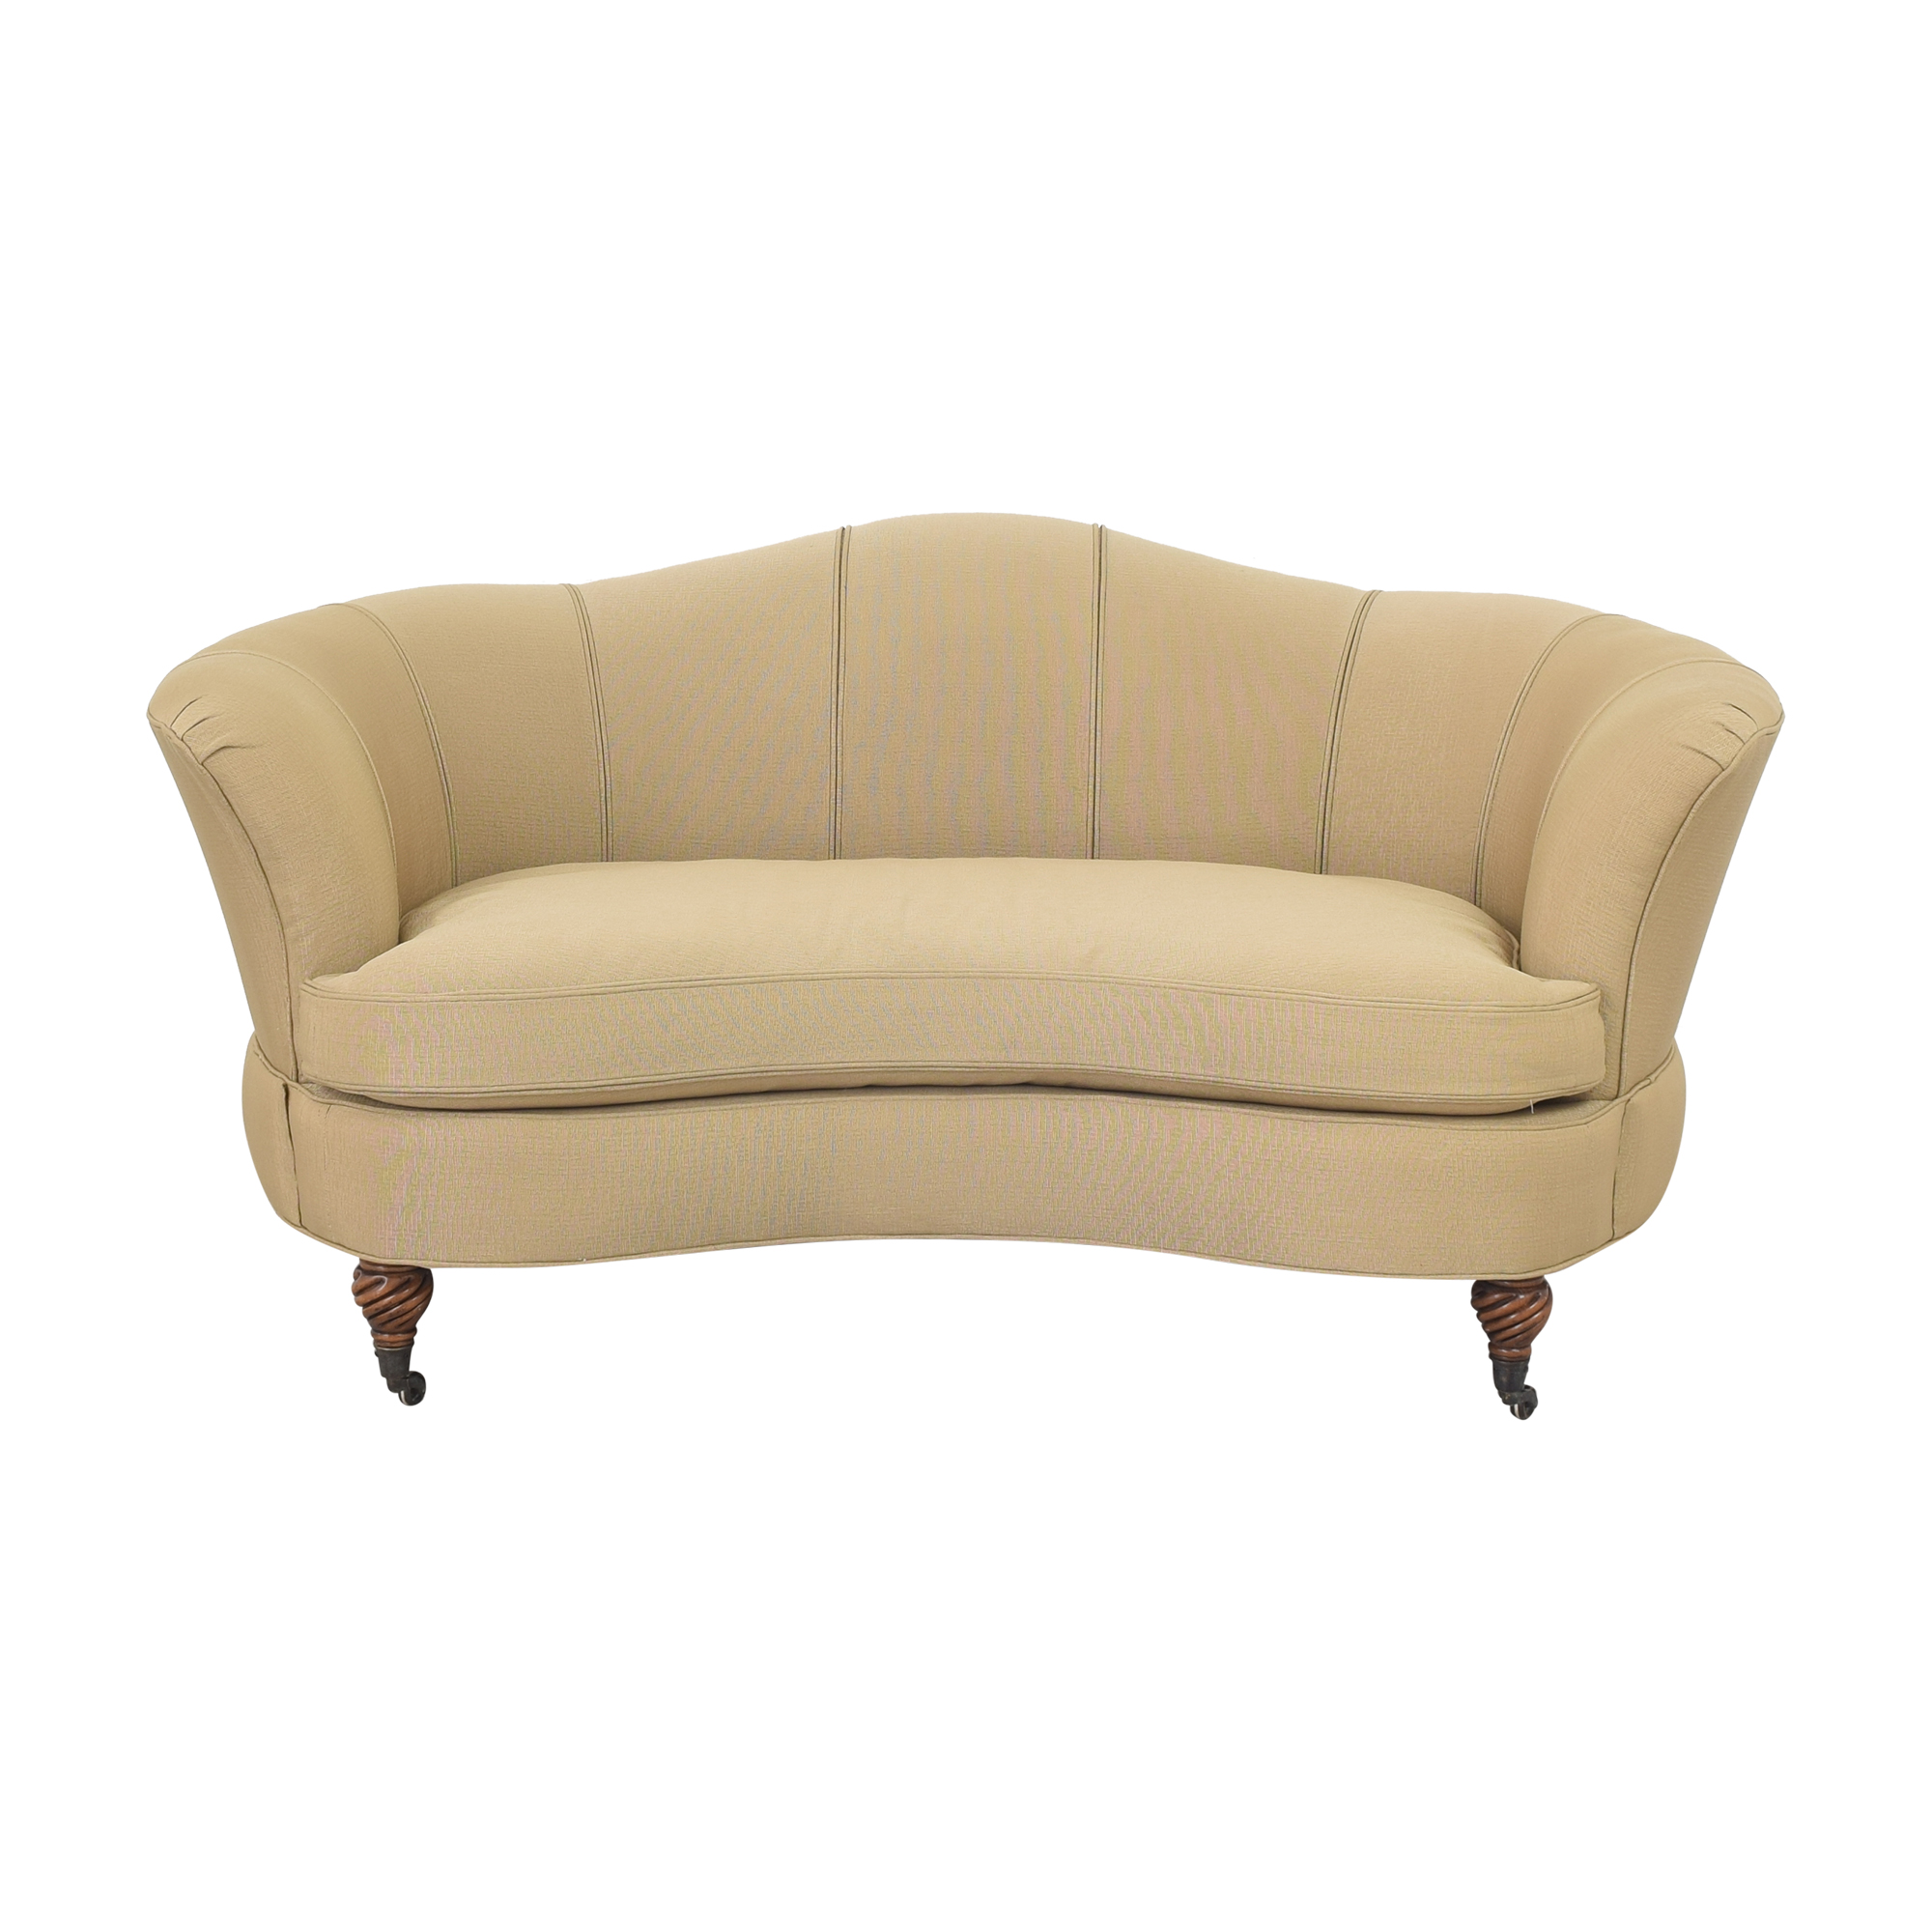 Sherrill Furniture Sherrill Furniture Crescent Sofa pa